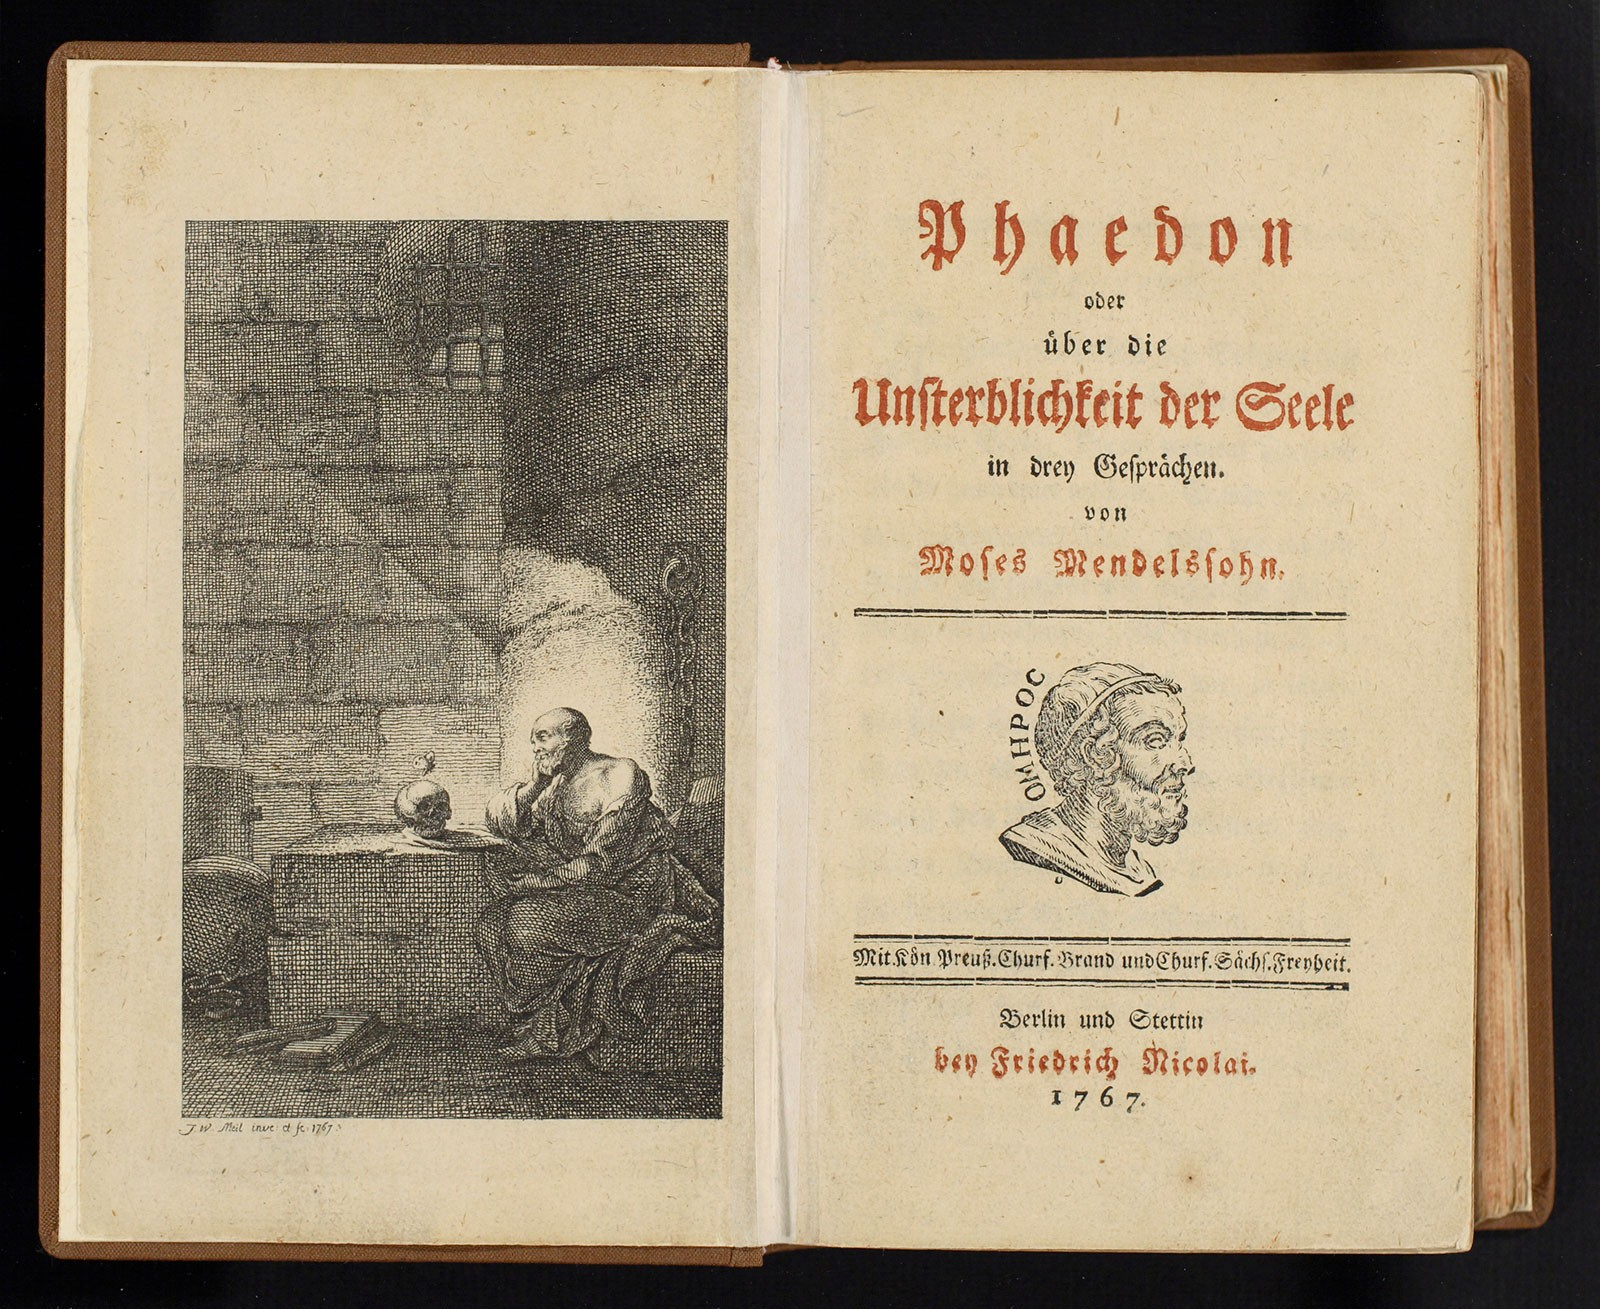 In his bestseller Phaedon, Moses revisits Plato's Phaedo, which relates the condemned Socrates's final discourse before his death, while adding his own moral and theological proof of the soul's immortal nature.  J.W. Meil, 1767 © bpk / Staatsbibliothek zu Berlin / Photo: Carola Seifert.